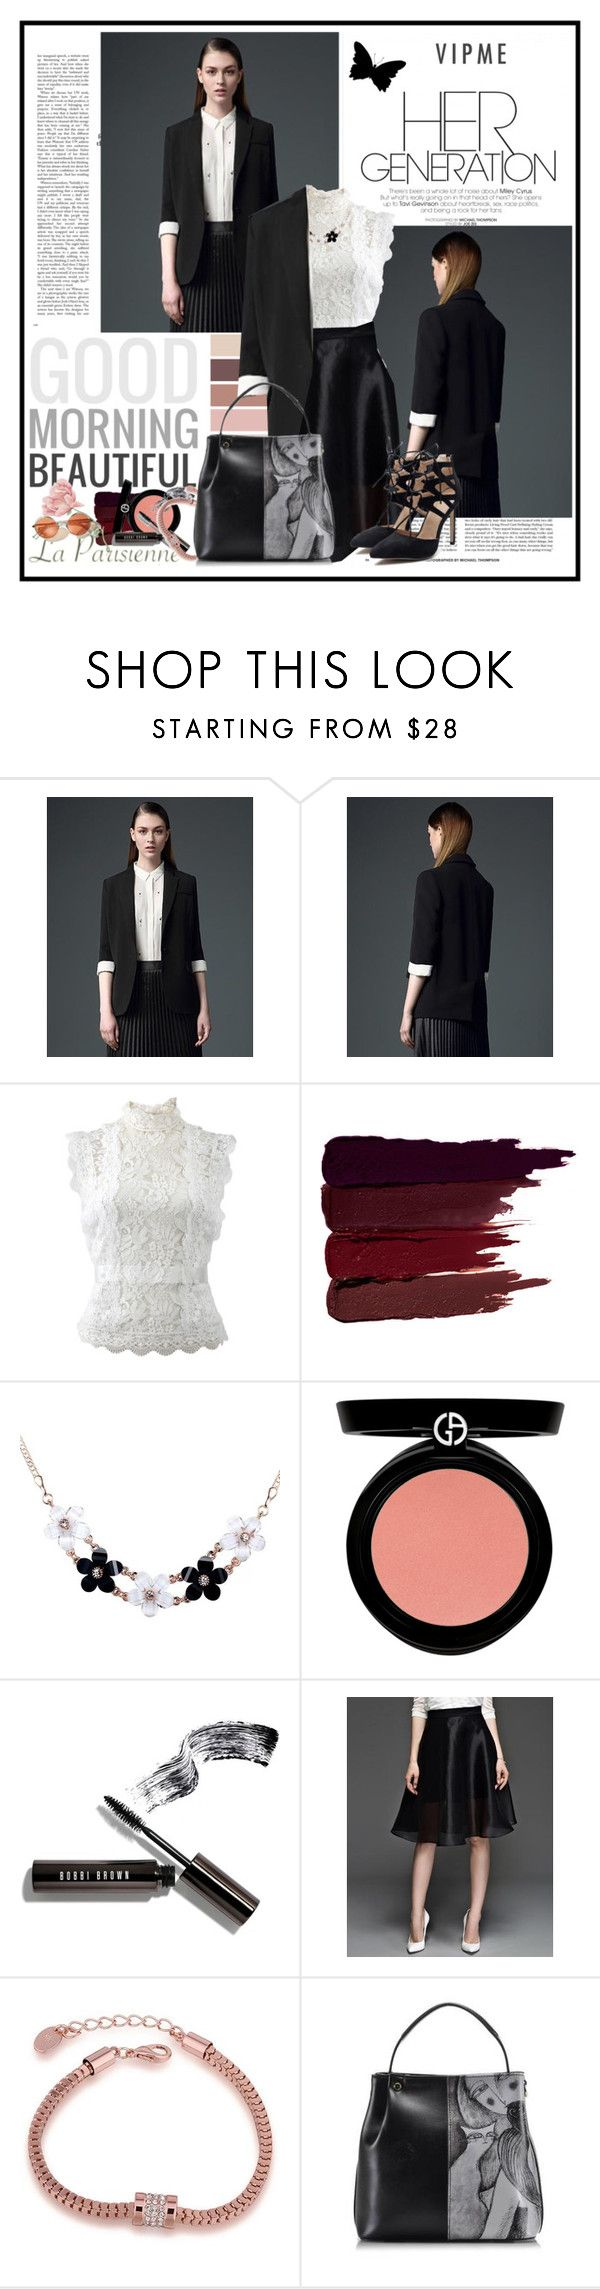 """USE THIS CODE TO GET 10% OFF ON ORDERS OVER $50: M2COUPON4"" by cindy88 ❤ liked on Polyvore featuring Oscar de la Renta, Serge Lutens, Armani Beauty, Bobbi Brown Cosmetics and vipme"